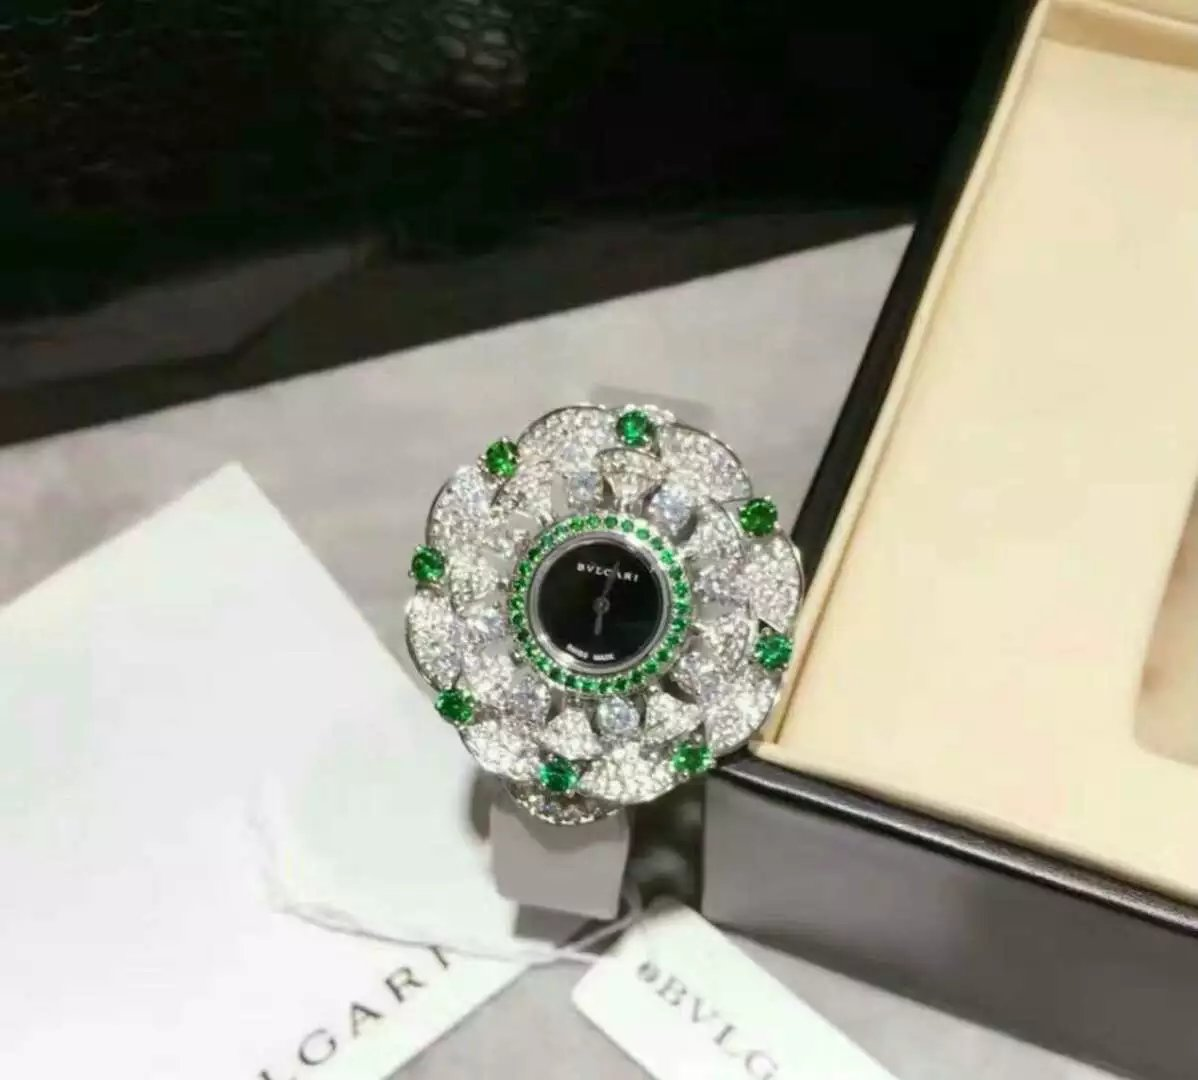 Bvlgari Watch 180